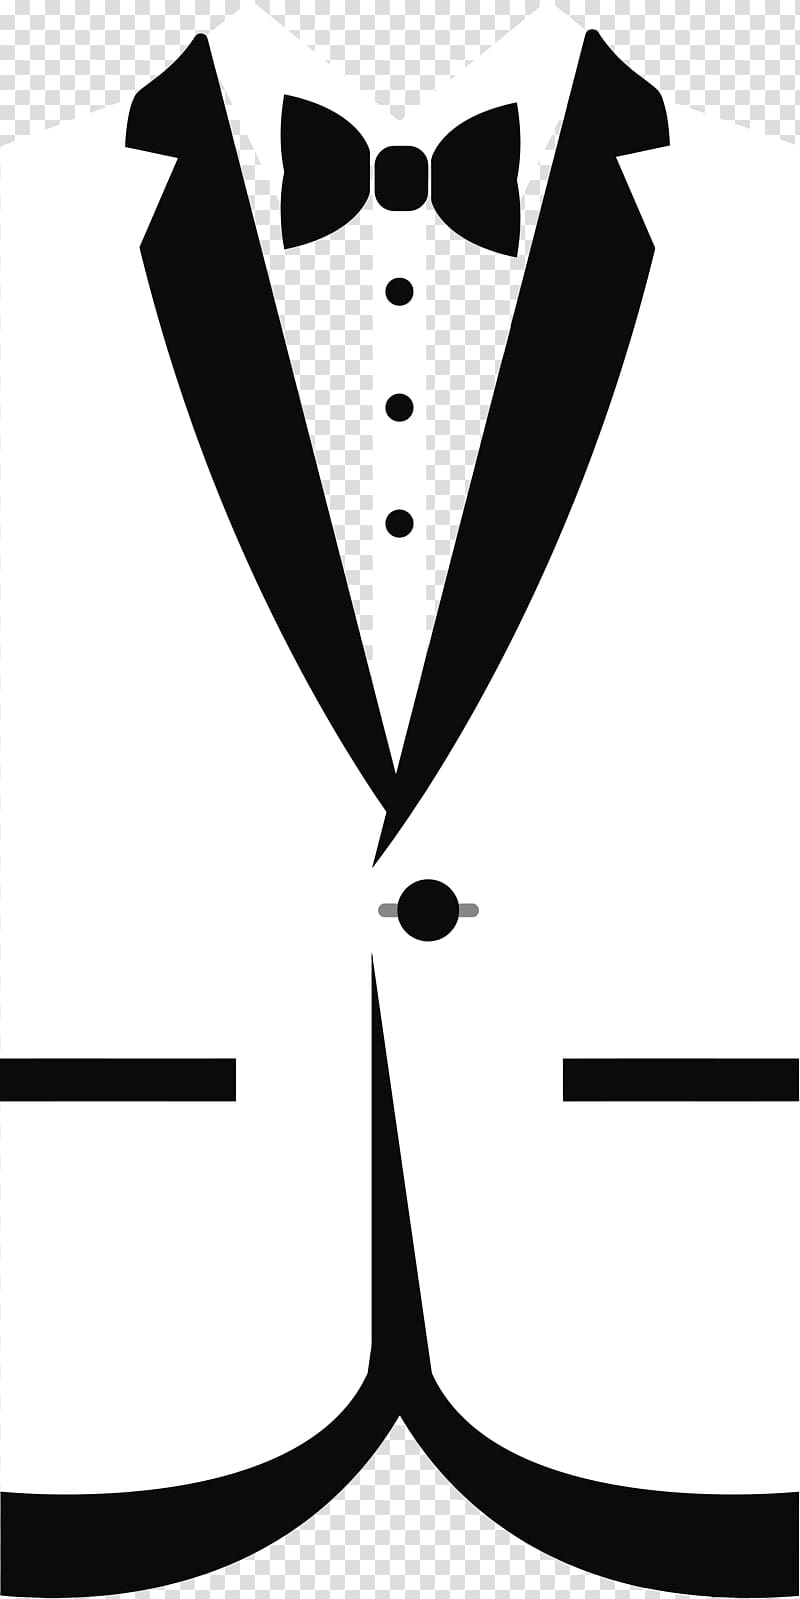 Shirt and tie clipart black and white jpg transparent stock White suit jacket illustration, T-shirt Tuxedo Bow tie , tie ... jpg transparent stock